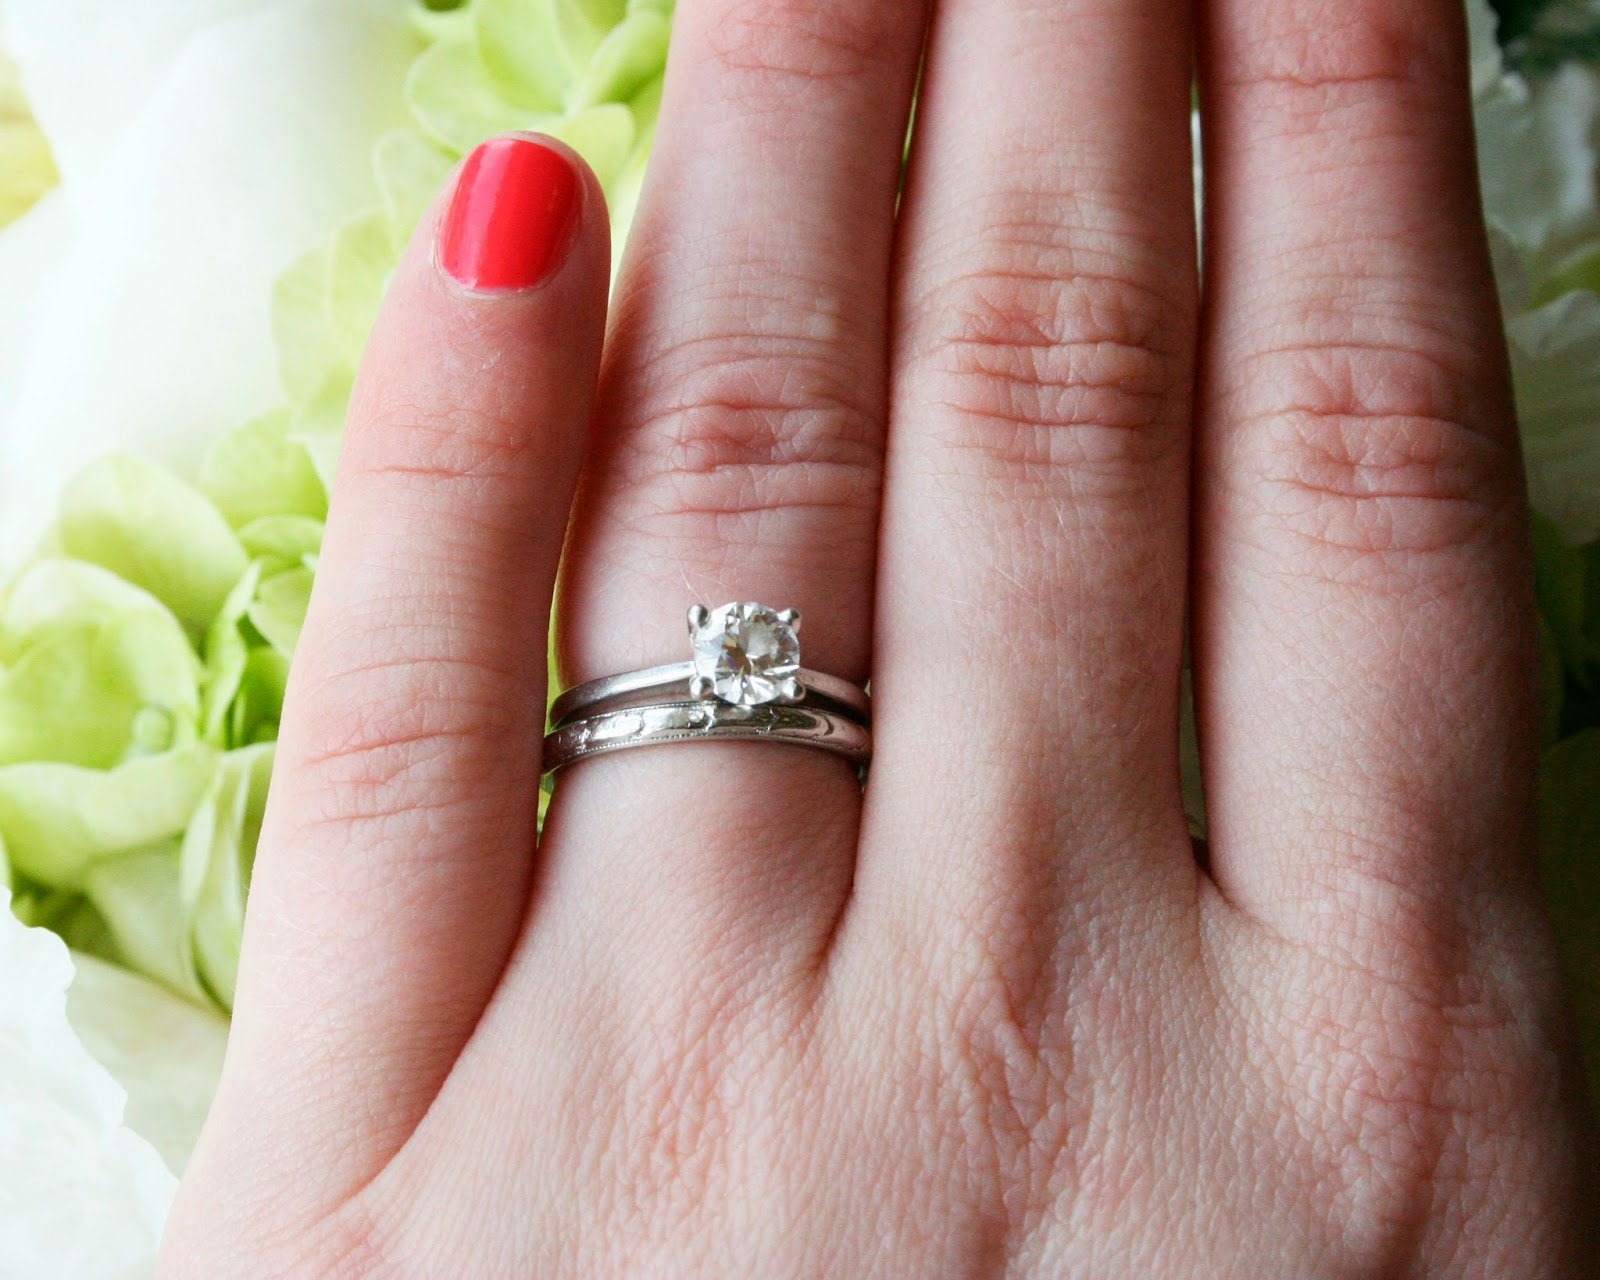 Mix Match Your Vintage And New Wedding Engagement Rings